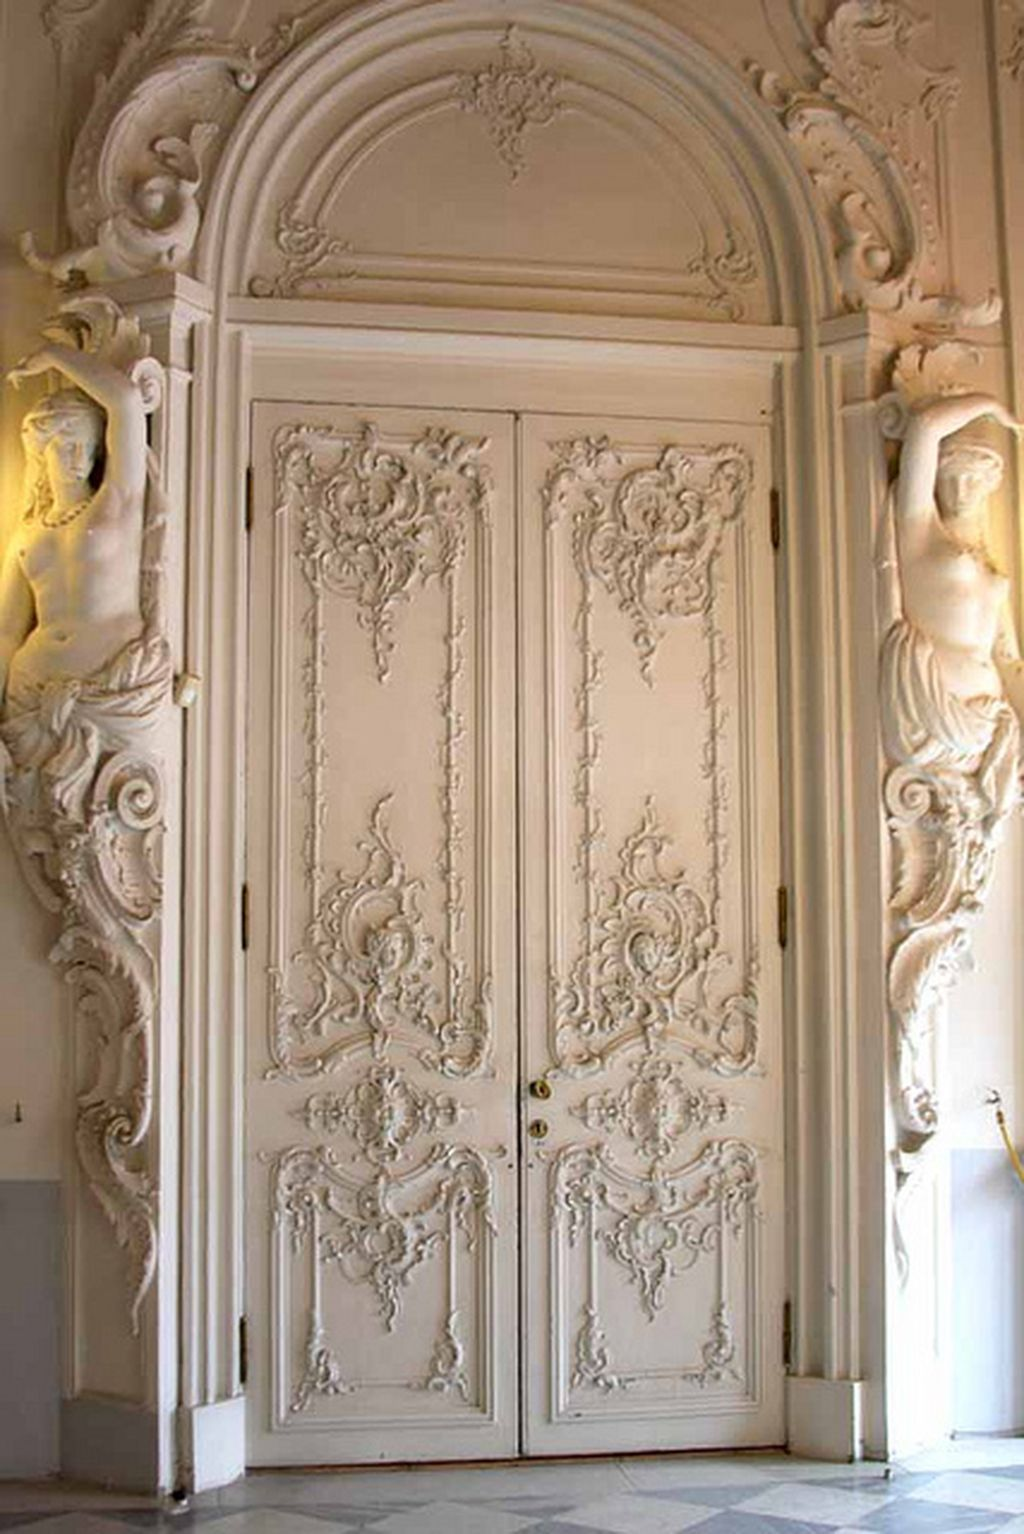 22 Beautiful Doors Inspiration In 2020 With Images Beautiful Doors Door Inspiration Unique Doors